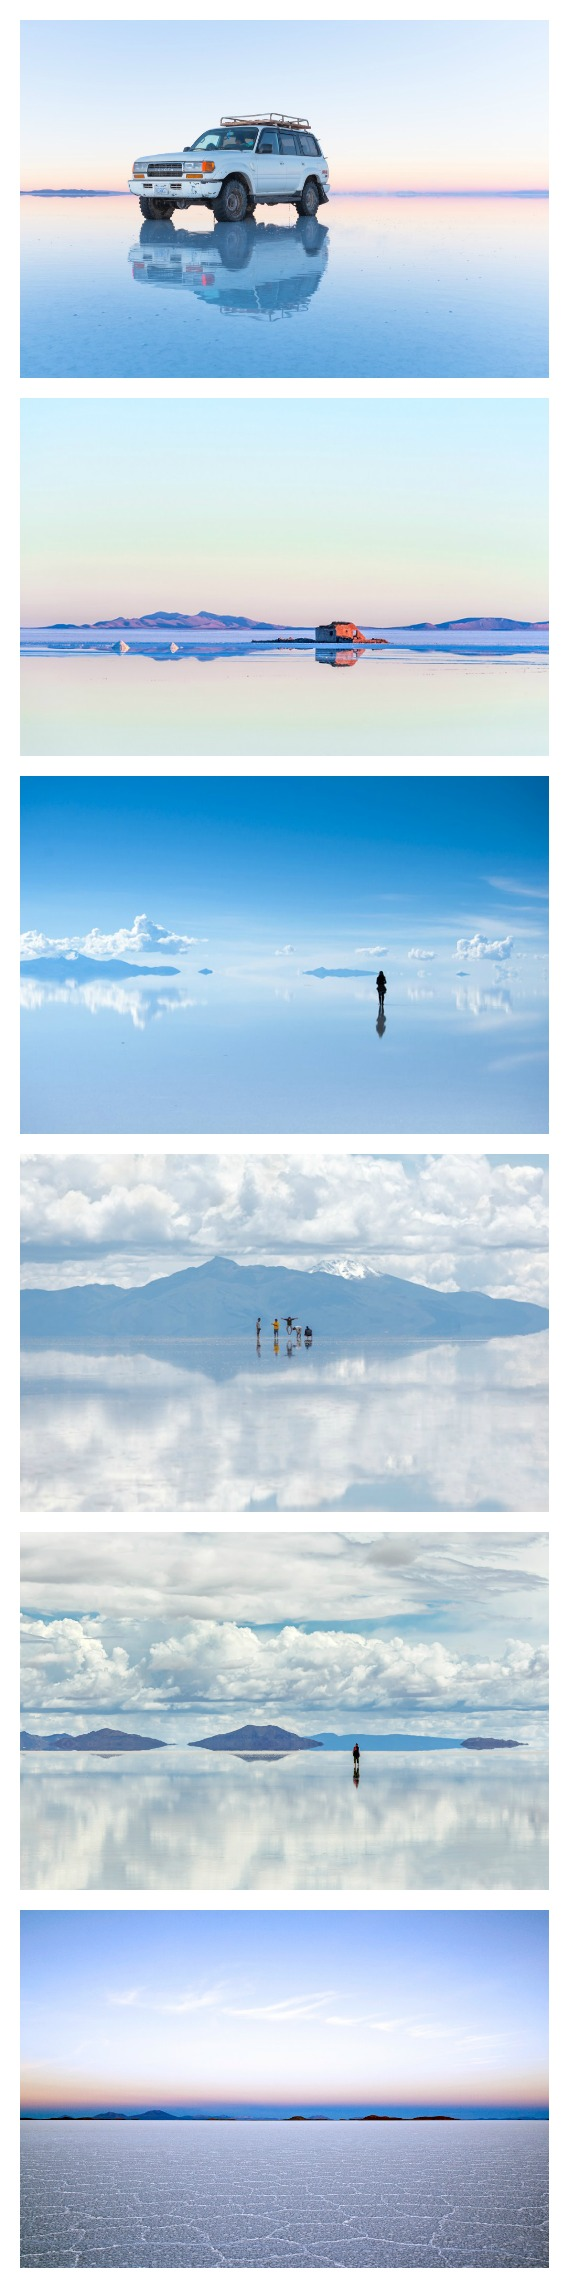 Bolivia's Salt Flats Are the Closest You'll Get to Heaven on Earth    Experience them for yourself on one of our South American projects https://www.questoverseas.com/gap-quest/